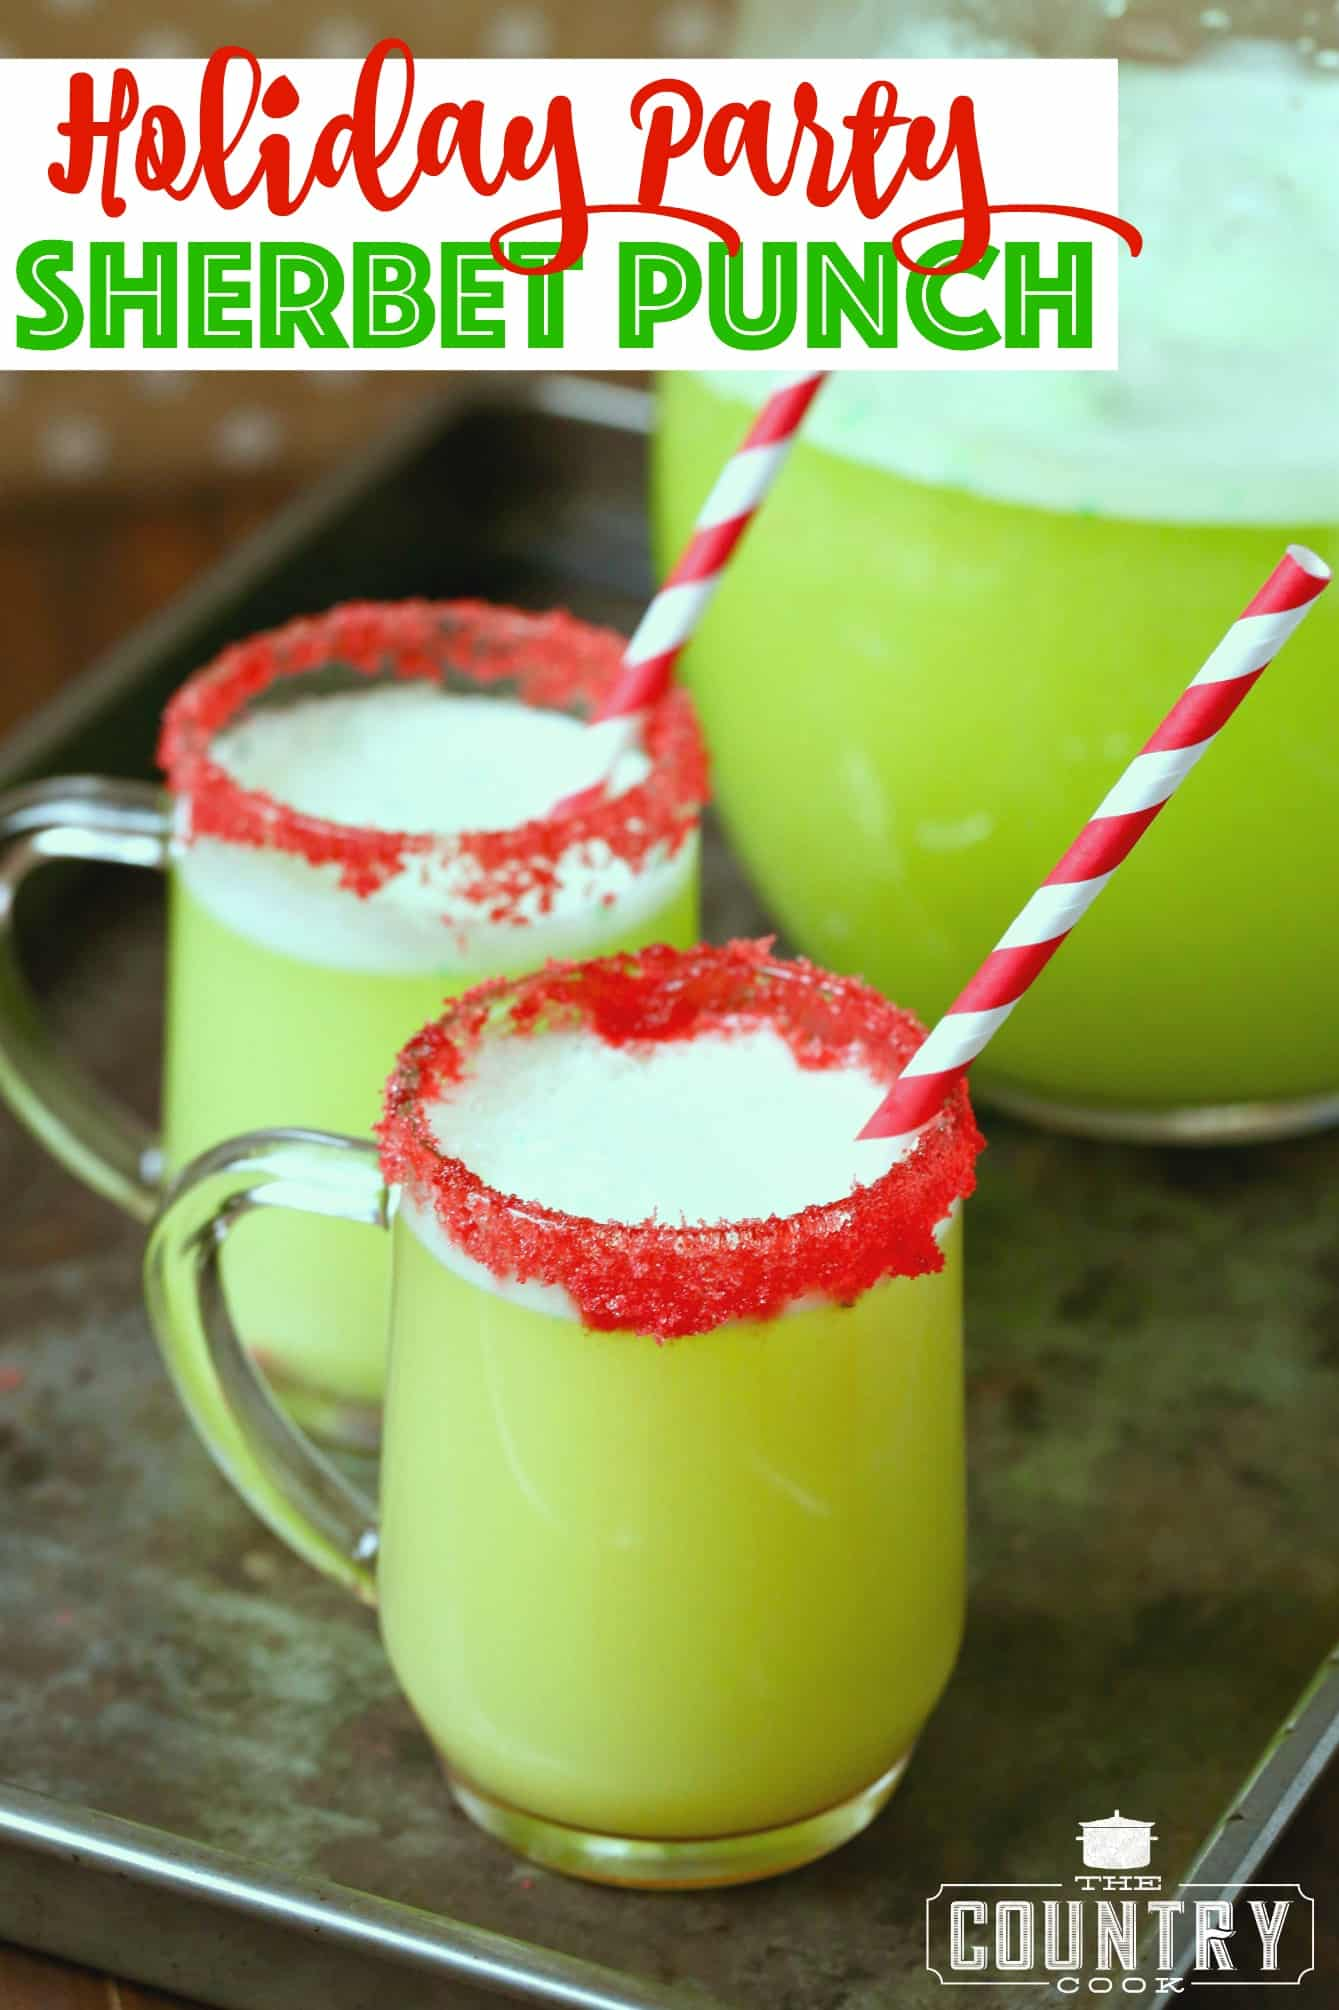 Holiday Party Sherbet Punch - The Country Cook